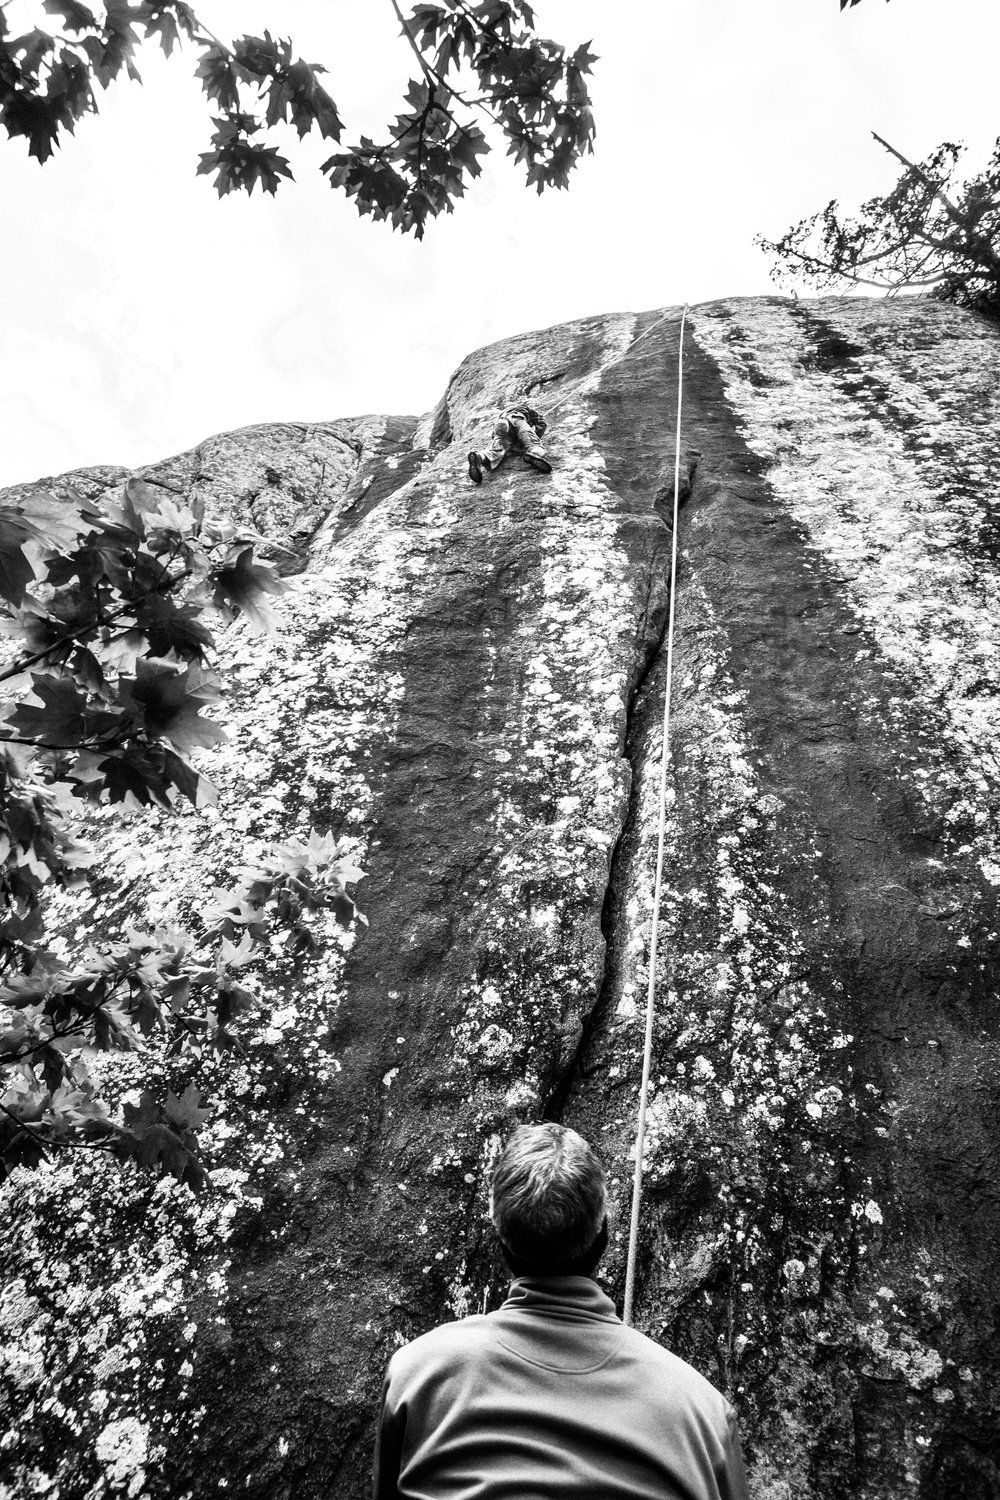 4-22-17 Rock Climbing black & white-19.jpg